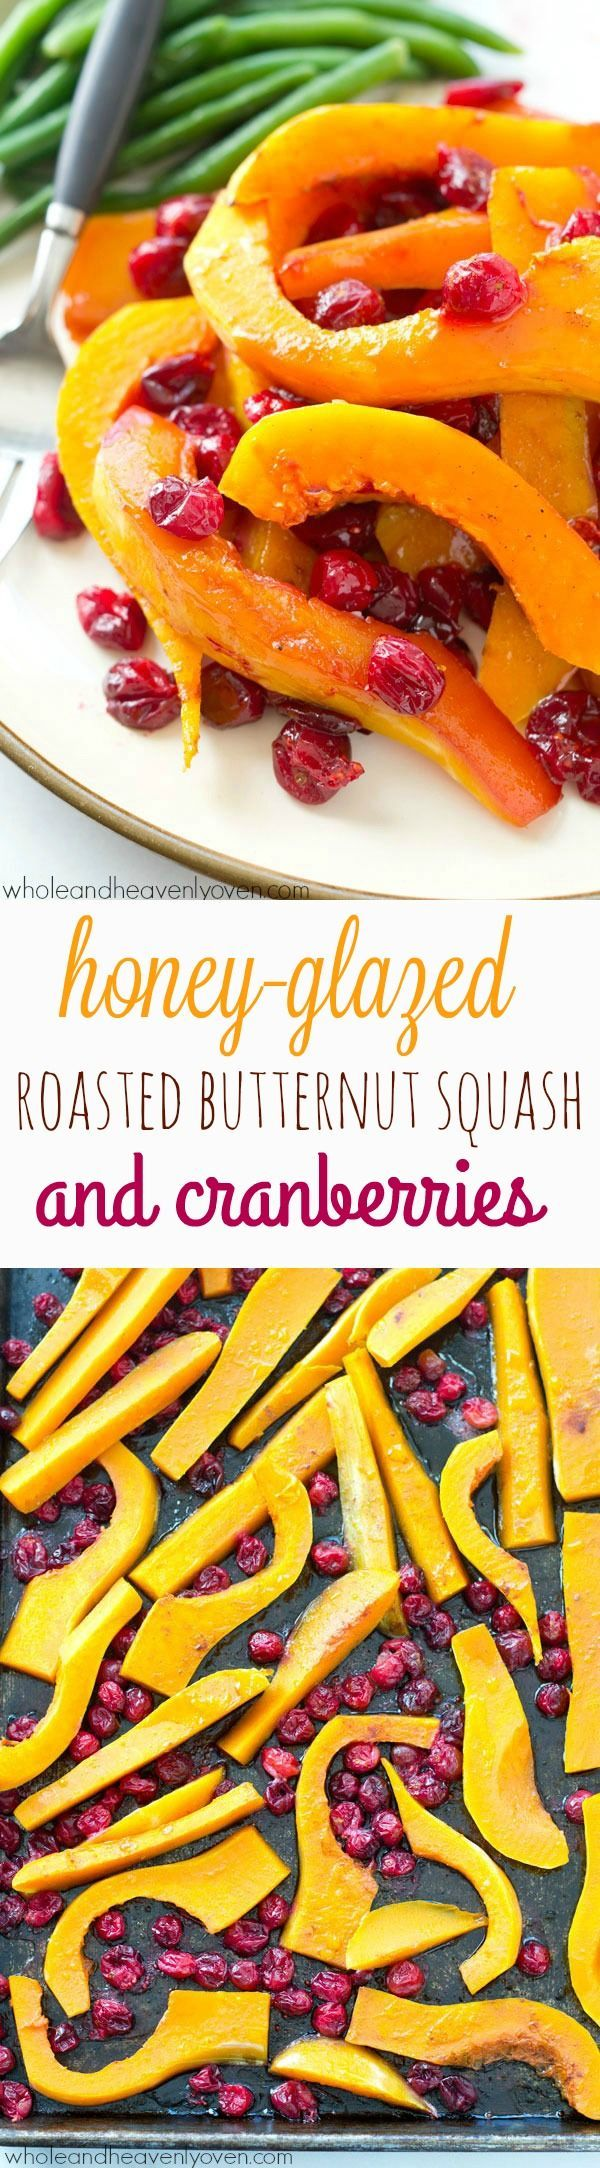 Butternut squash and cranberries are roasted to perfection in tons of honey and…